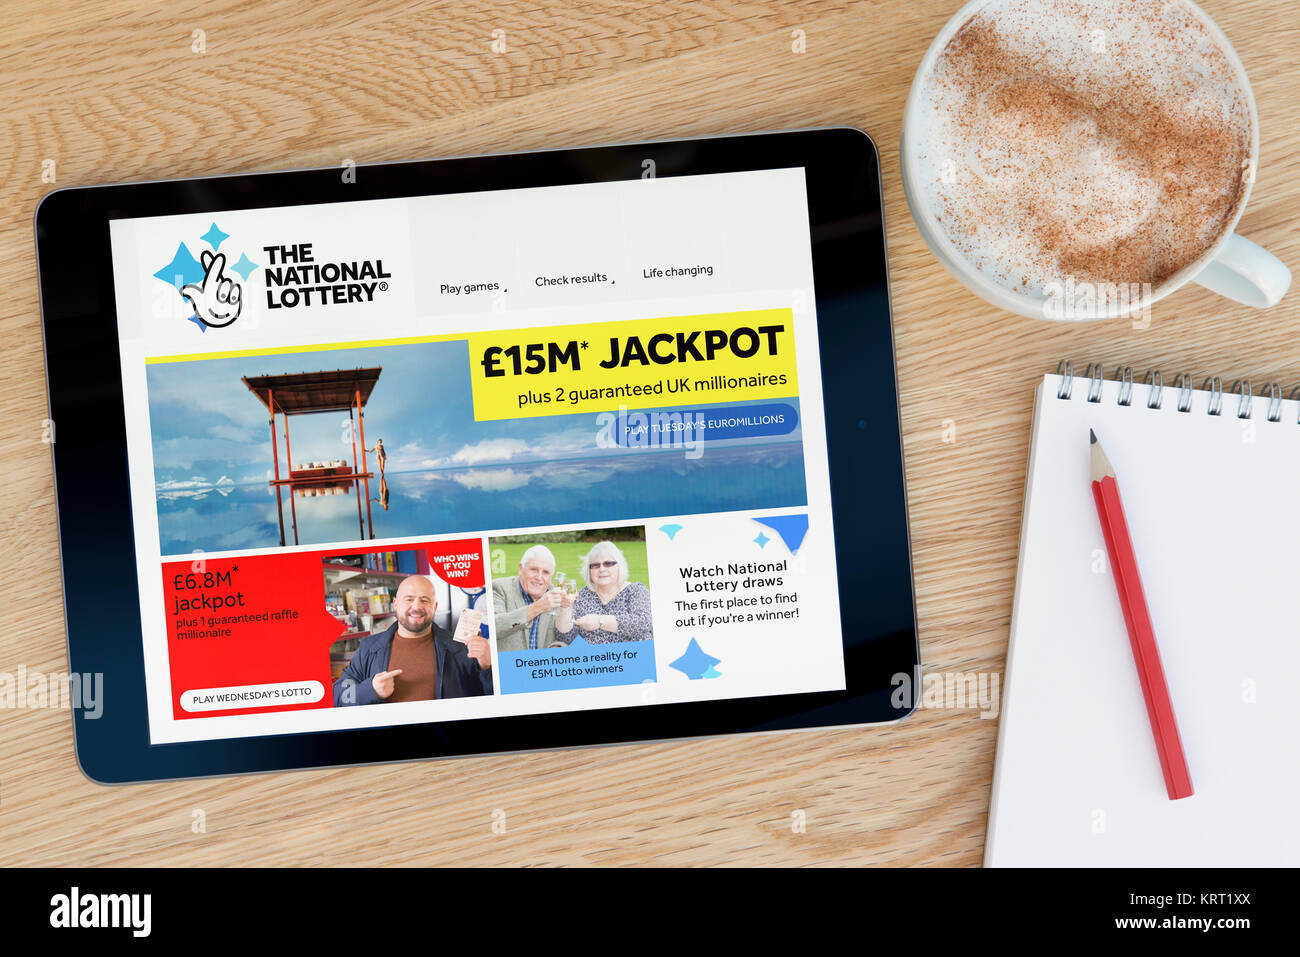 The National Lottery App Stock Photos & The National Lottery App